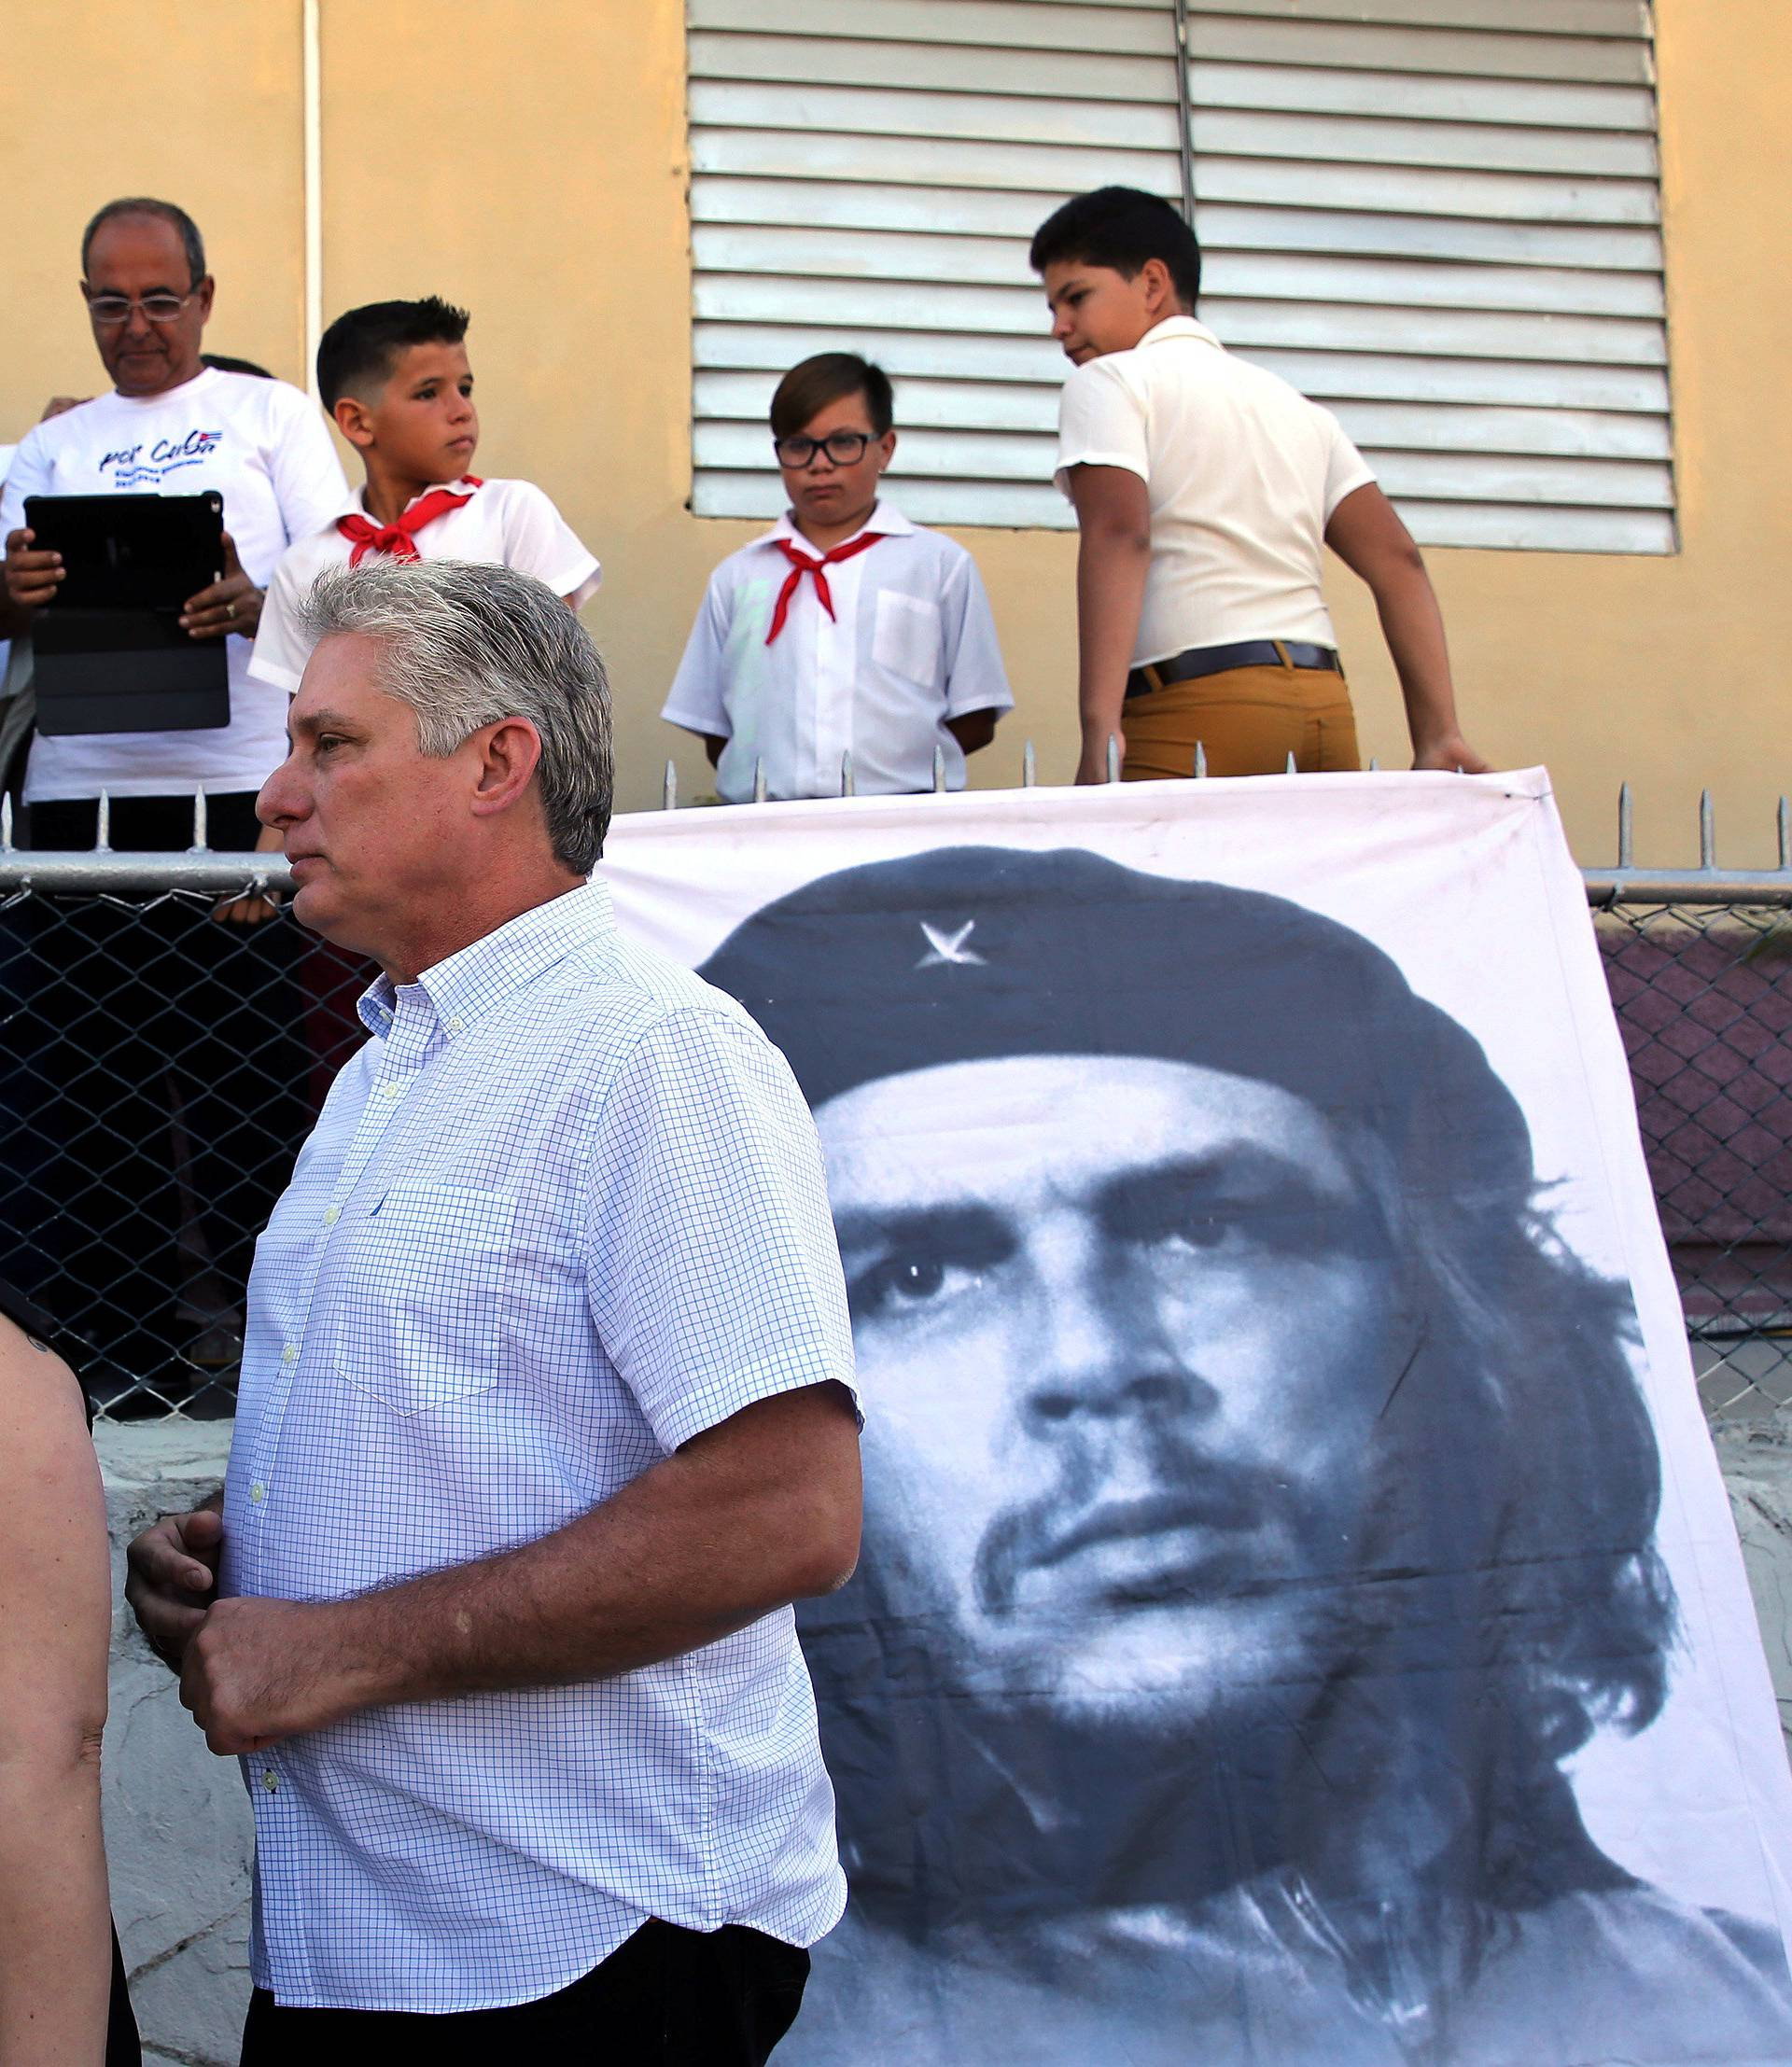 FILE PHOTO: Cuba's First Vice-President Miguel Diaz-Canel and his wife Lis Cuesta stand in line before Diaz-Canel casts his vote during an election of candidates for the national and provincial assemblies, in Santa Clara